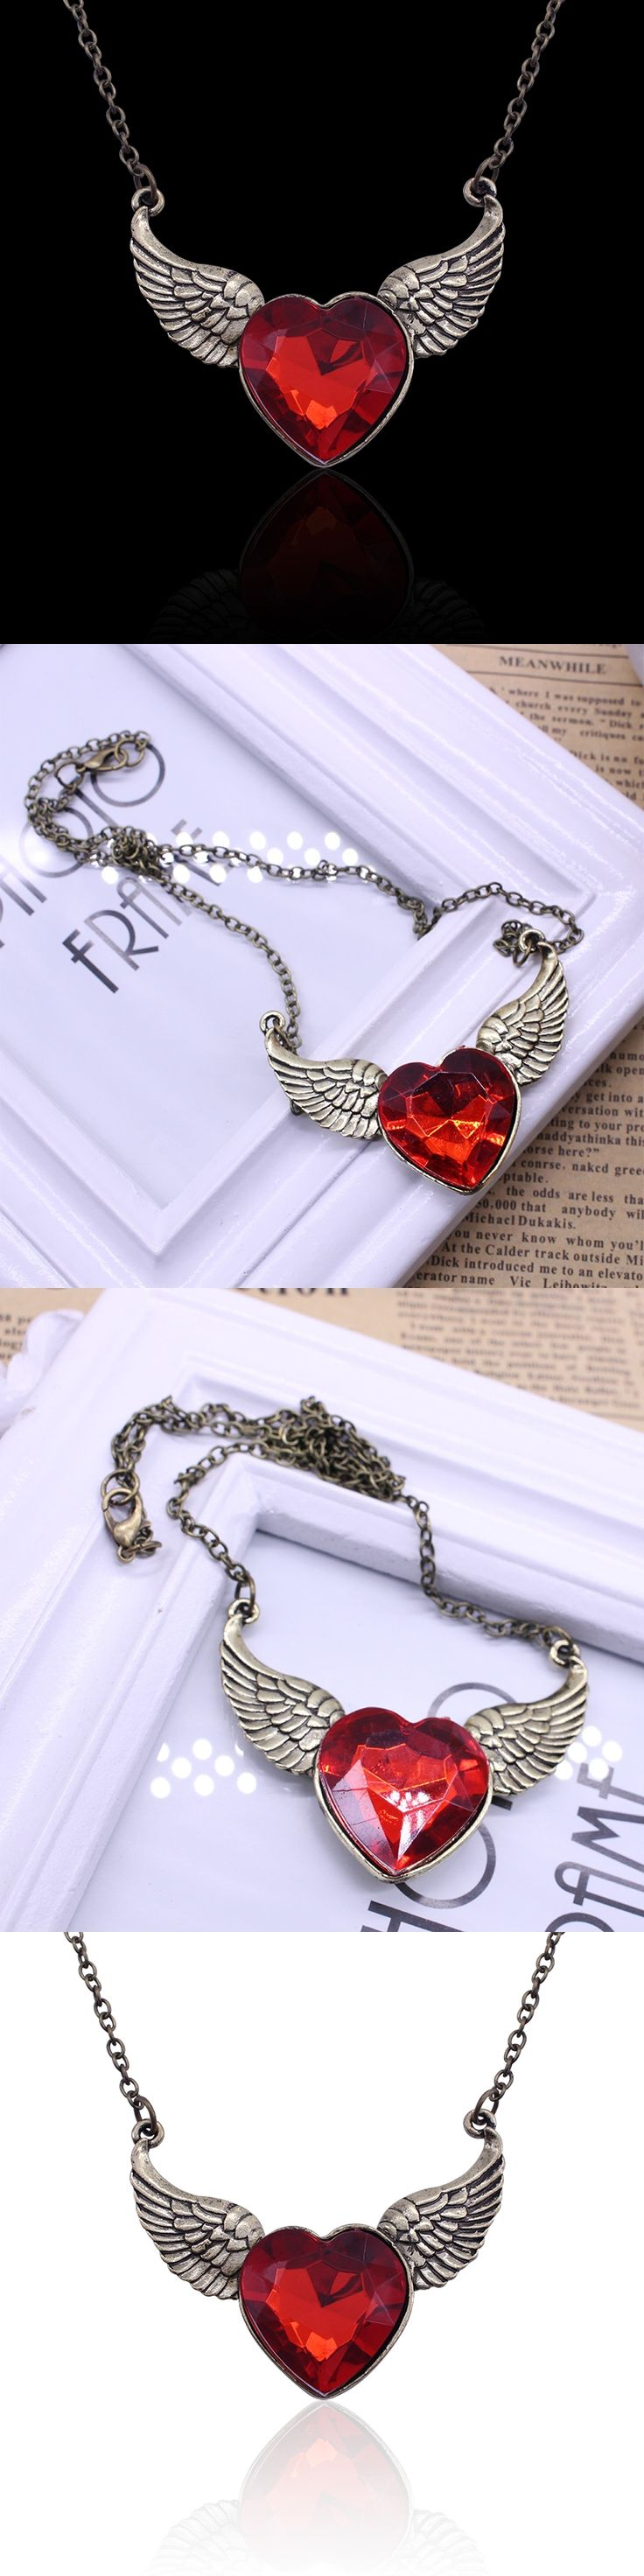 2017 Europe And America Popular Retro Angel Wings Necklaces & Pendants Heart Big Red Rhinestones Choker Necklace Women